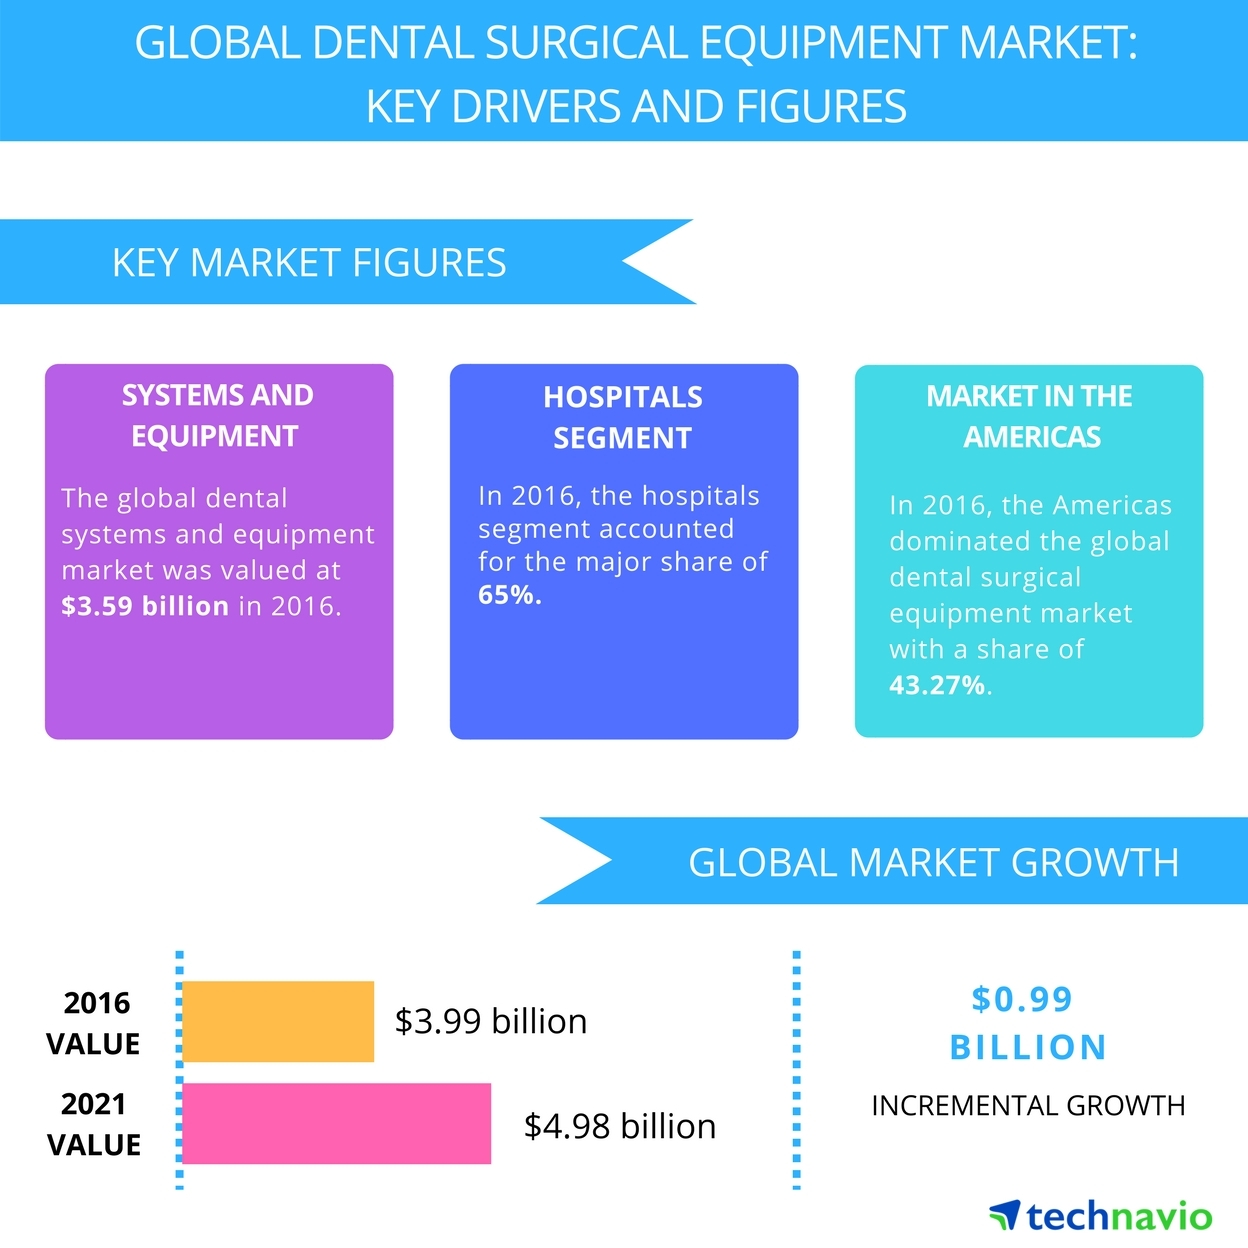 Top 5 Vendors in the Dental Surgical Equipment Market From 2017 to